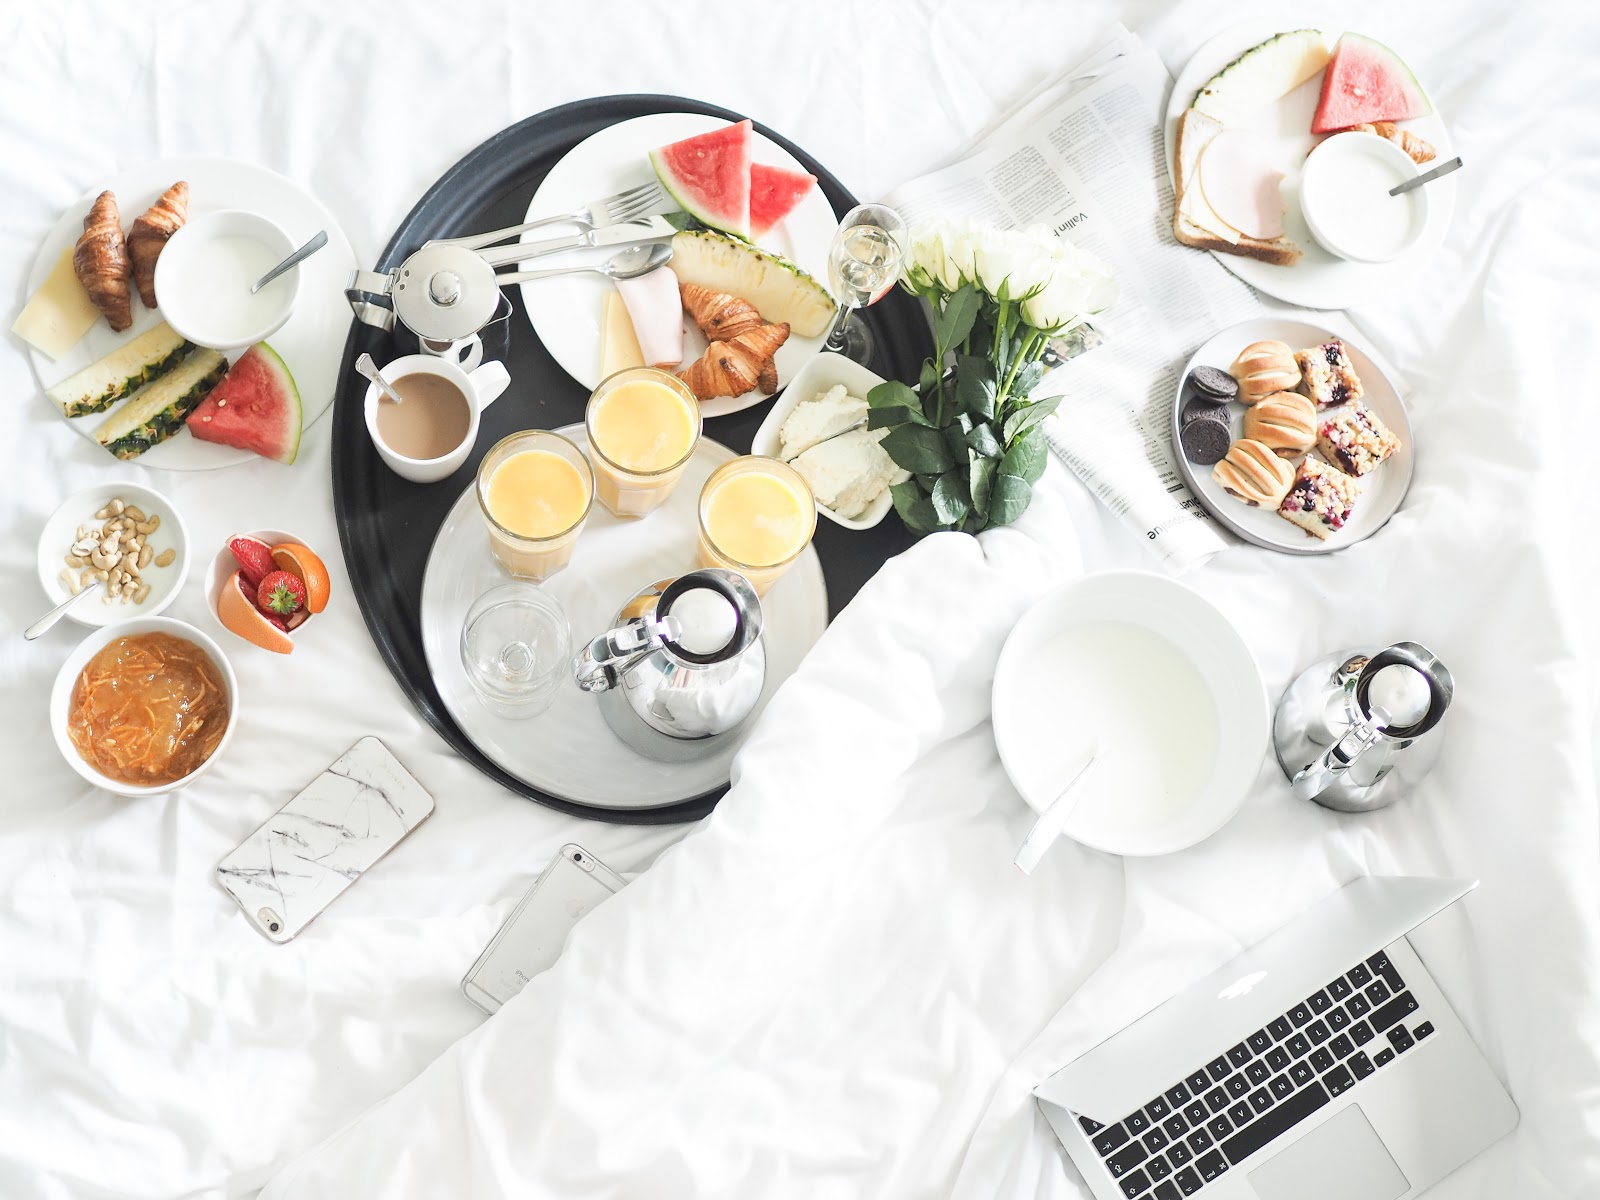 BFF minivacay and breakfast in bed